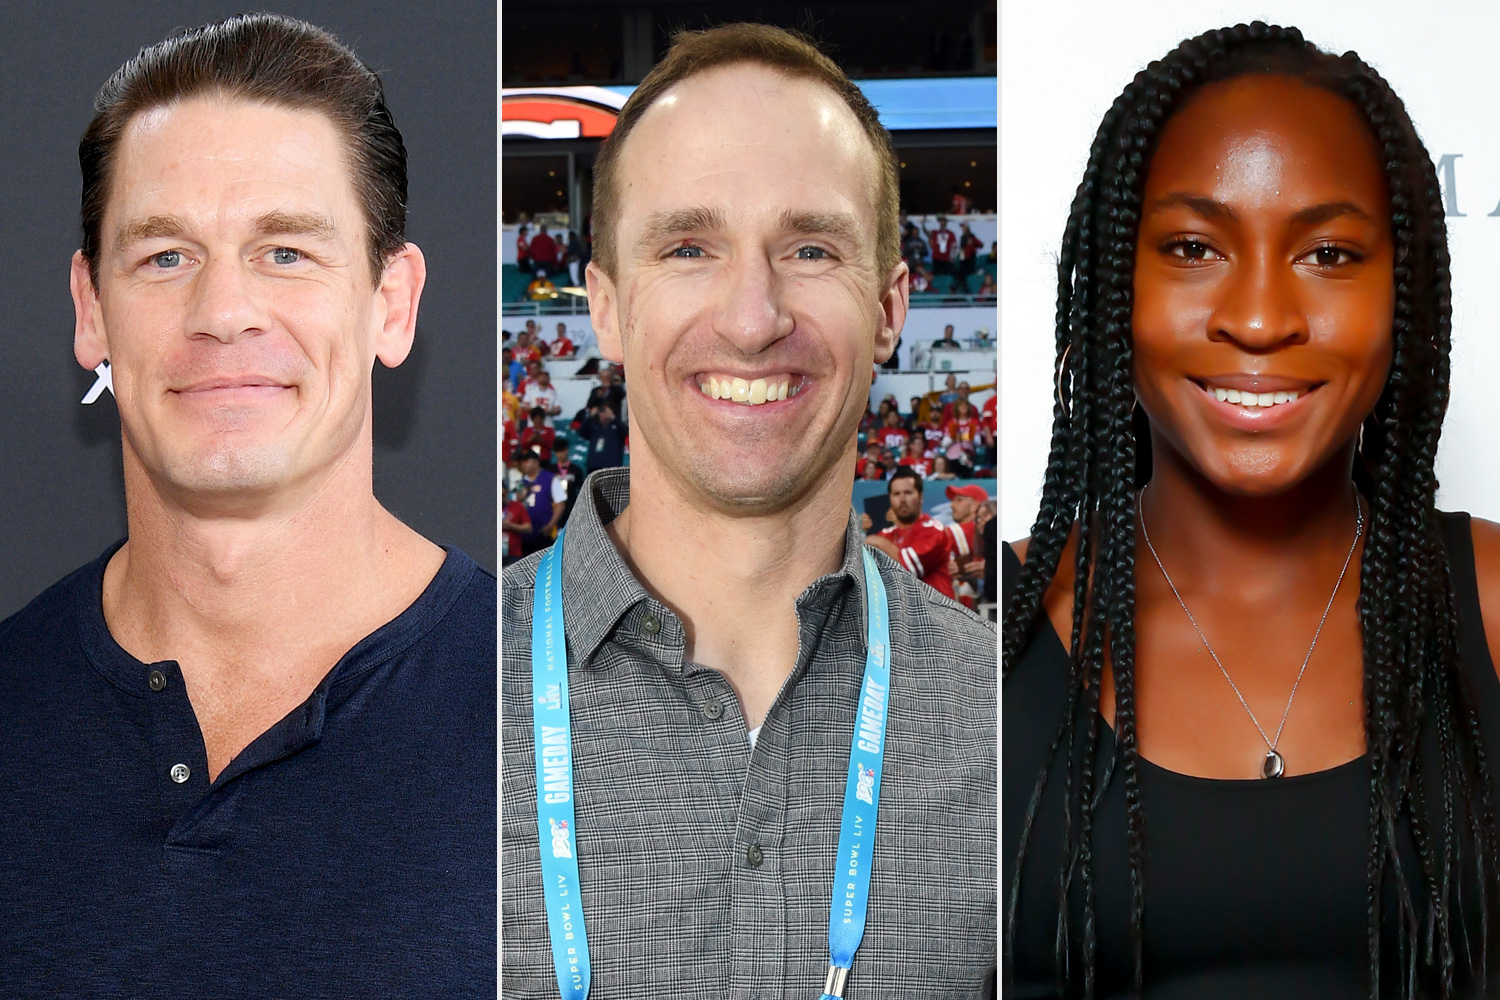 John Cena, Drew Brees, Coco Gauff and More Sports Stars Honor Healthcare Heroes in Epic Tribute